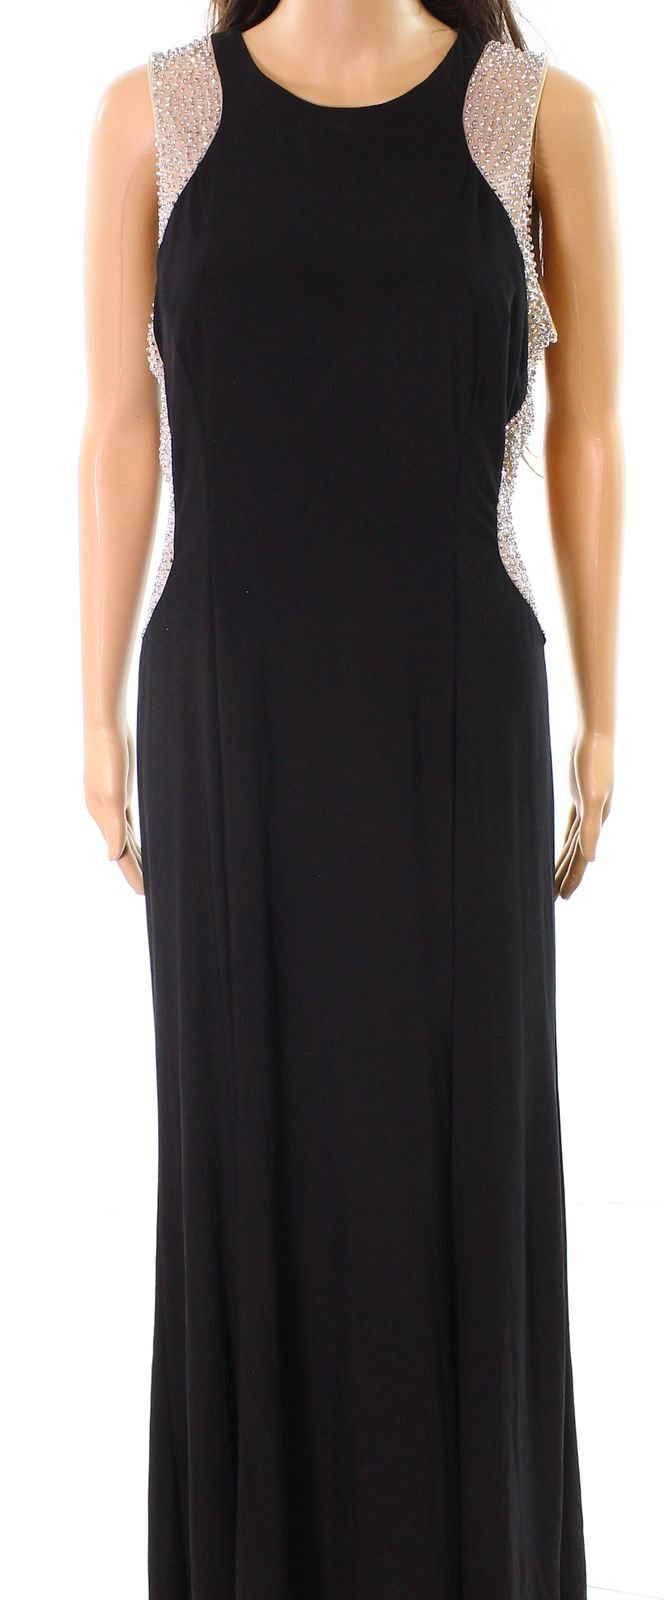 Xscape NEW Black Womens Size 6P Petite Embellished Jersey Knit Gown ...